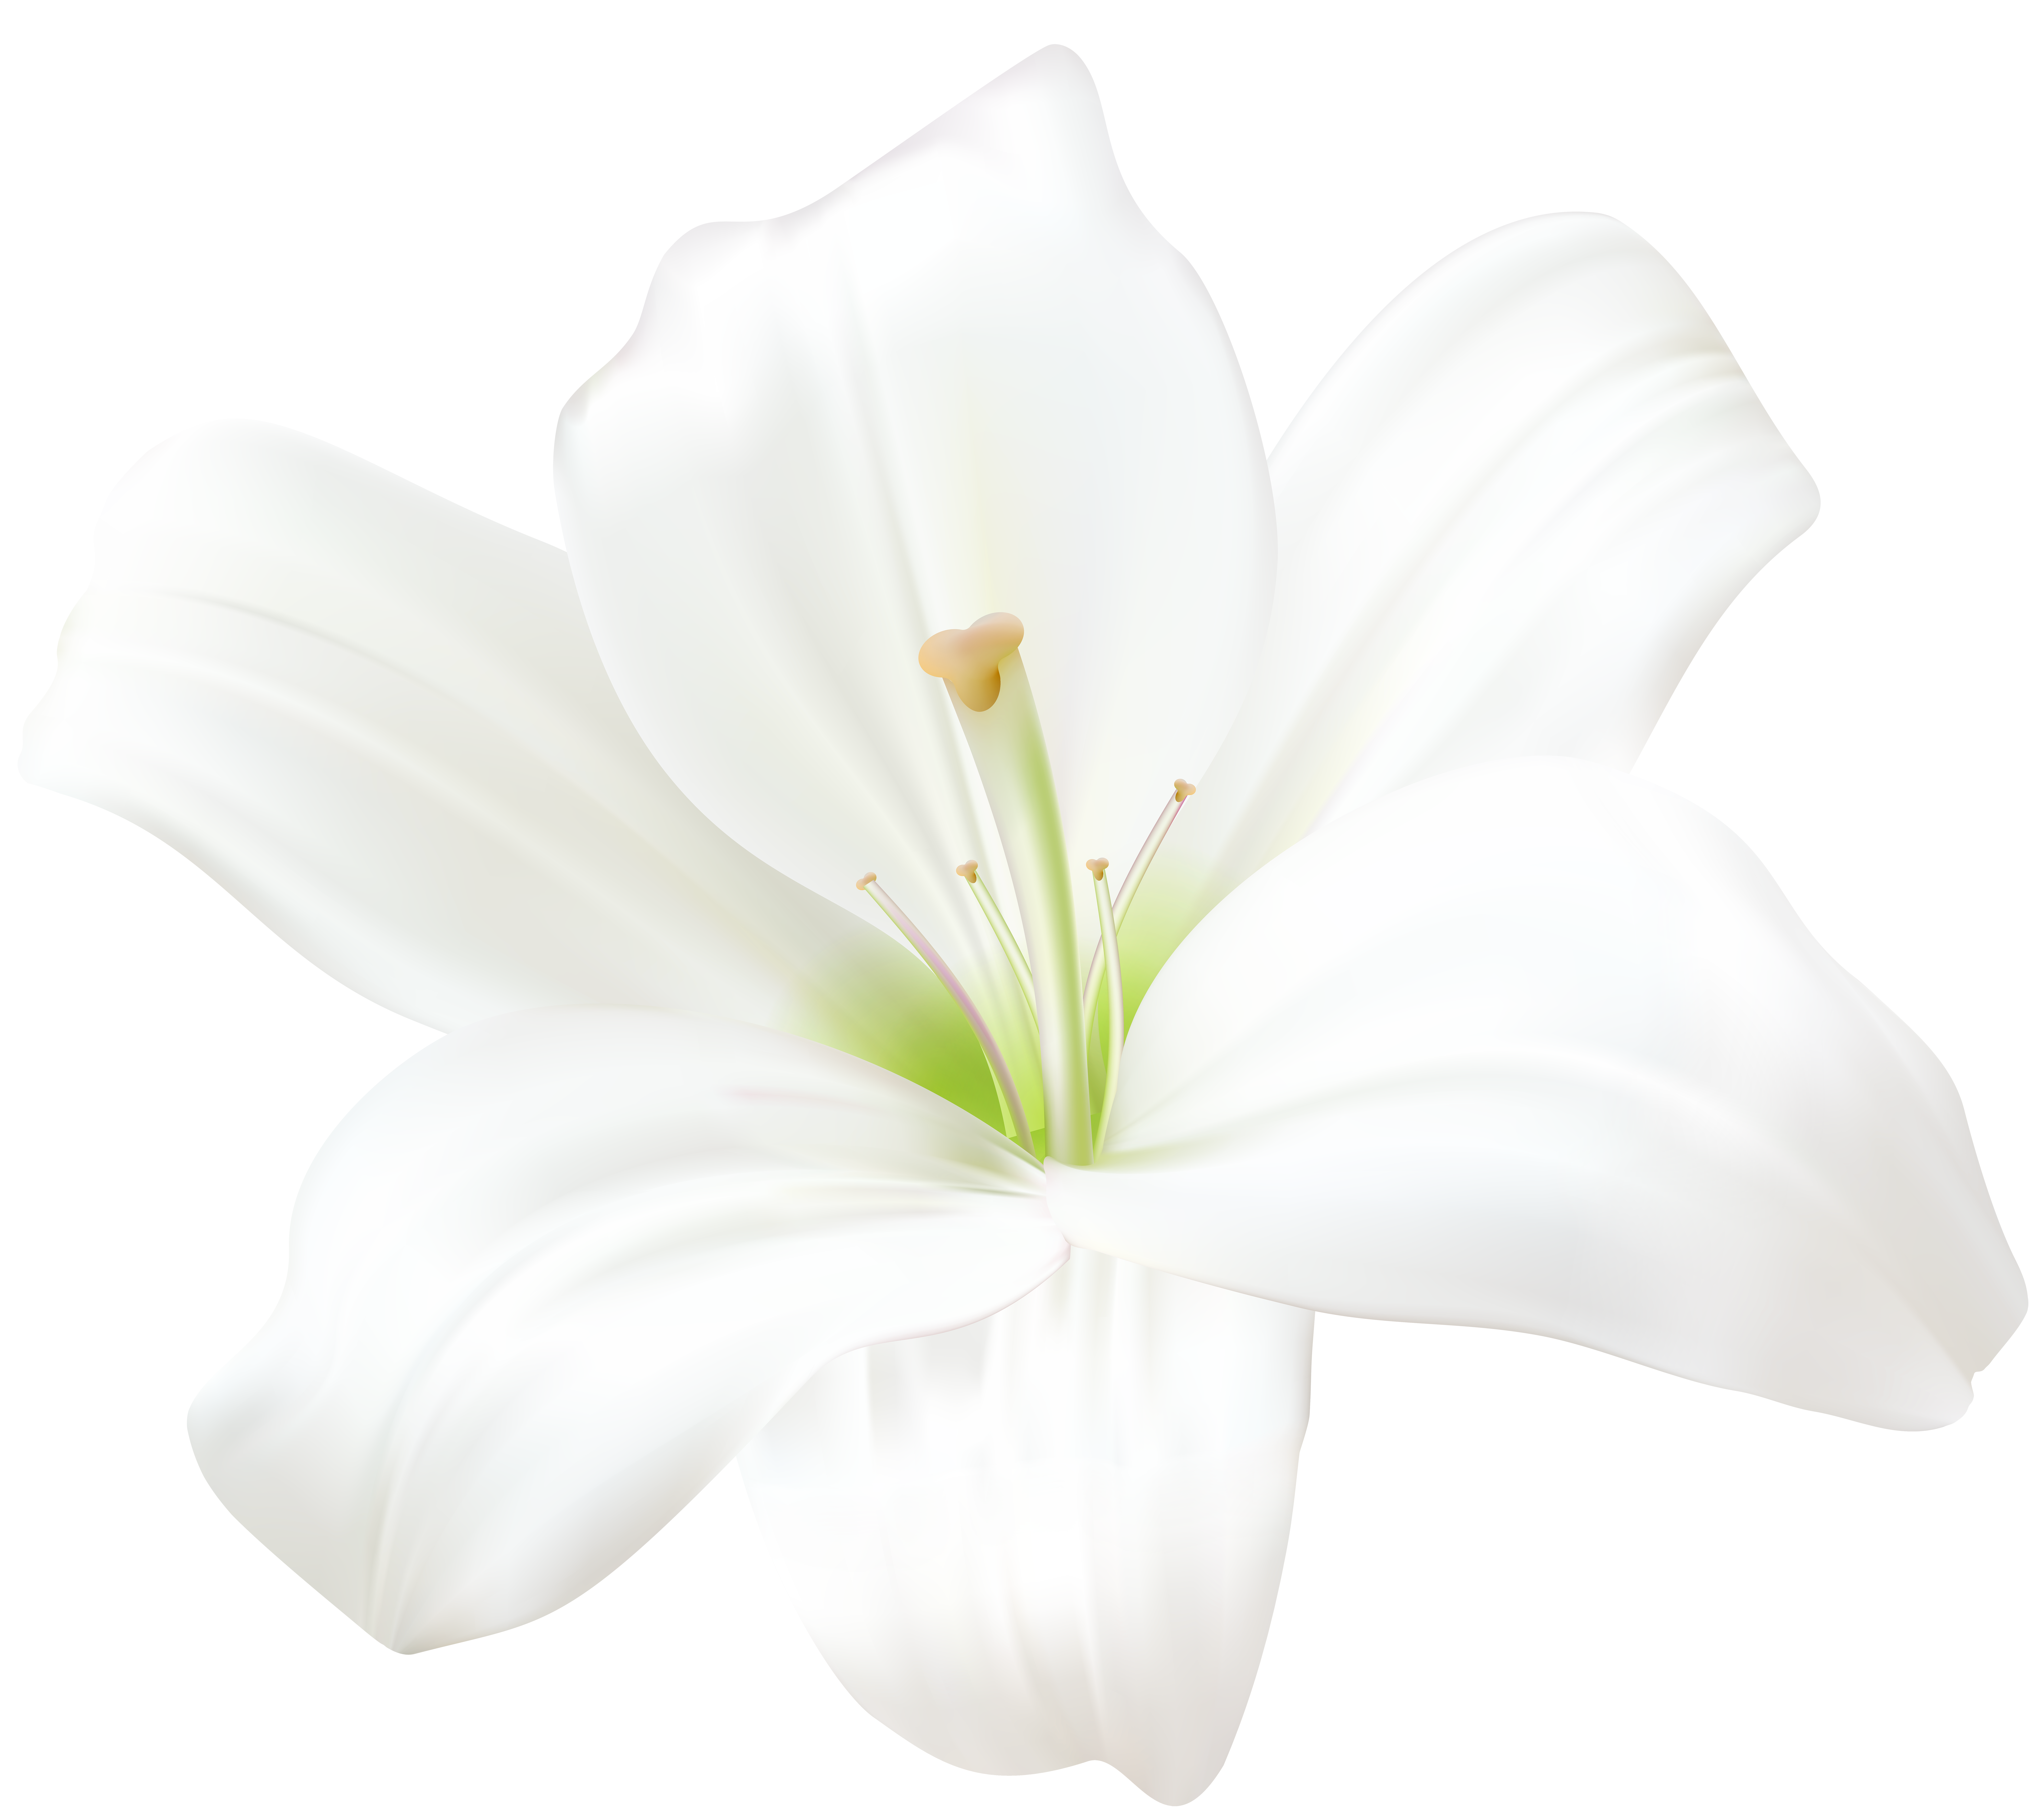 White Lily Png Clip Art Image Gallery Yopriceville High Quality Images And Transparent Png Free Clipart White Lilies Lily Painting Flower Sketches